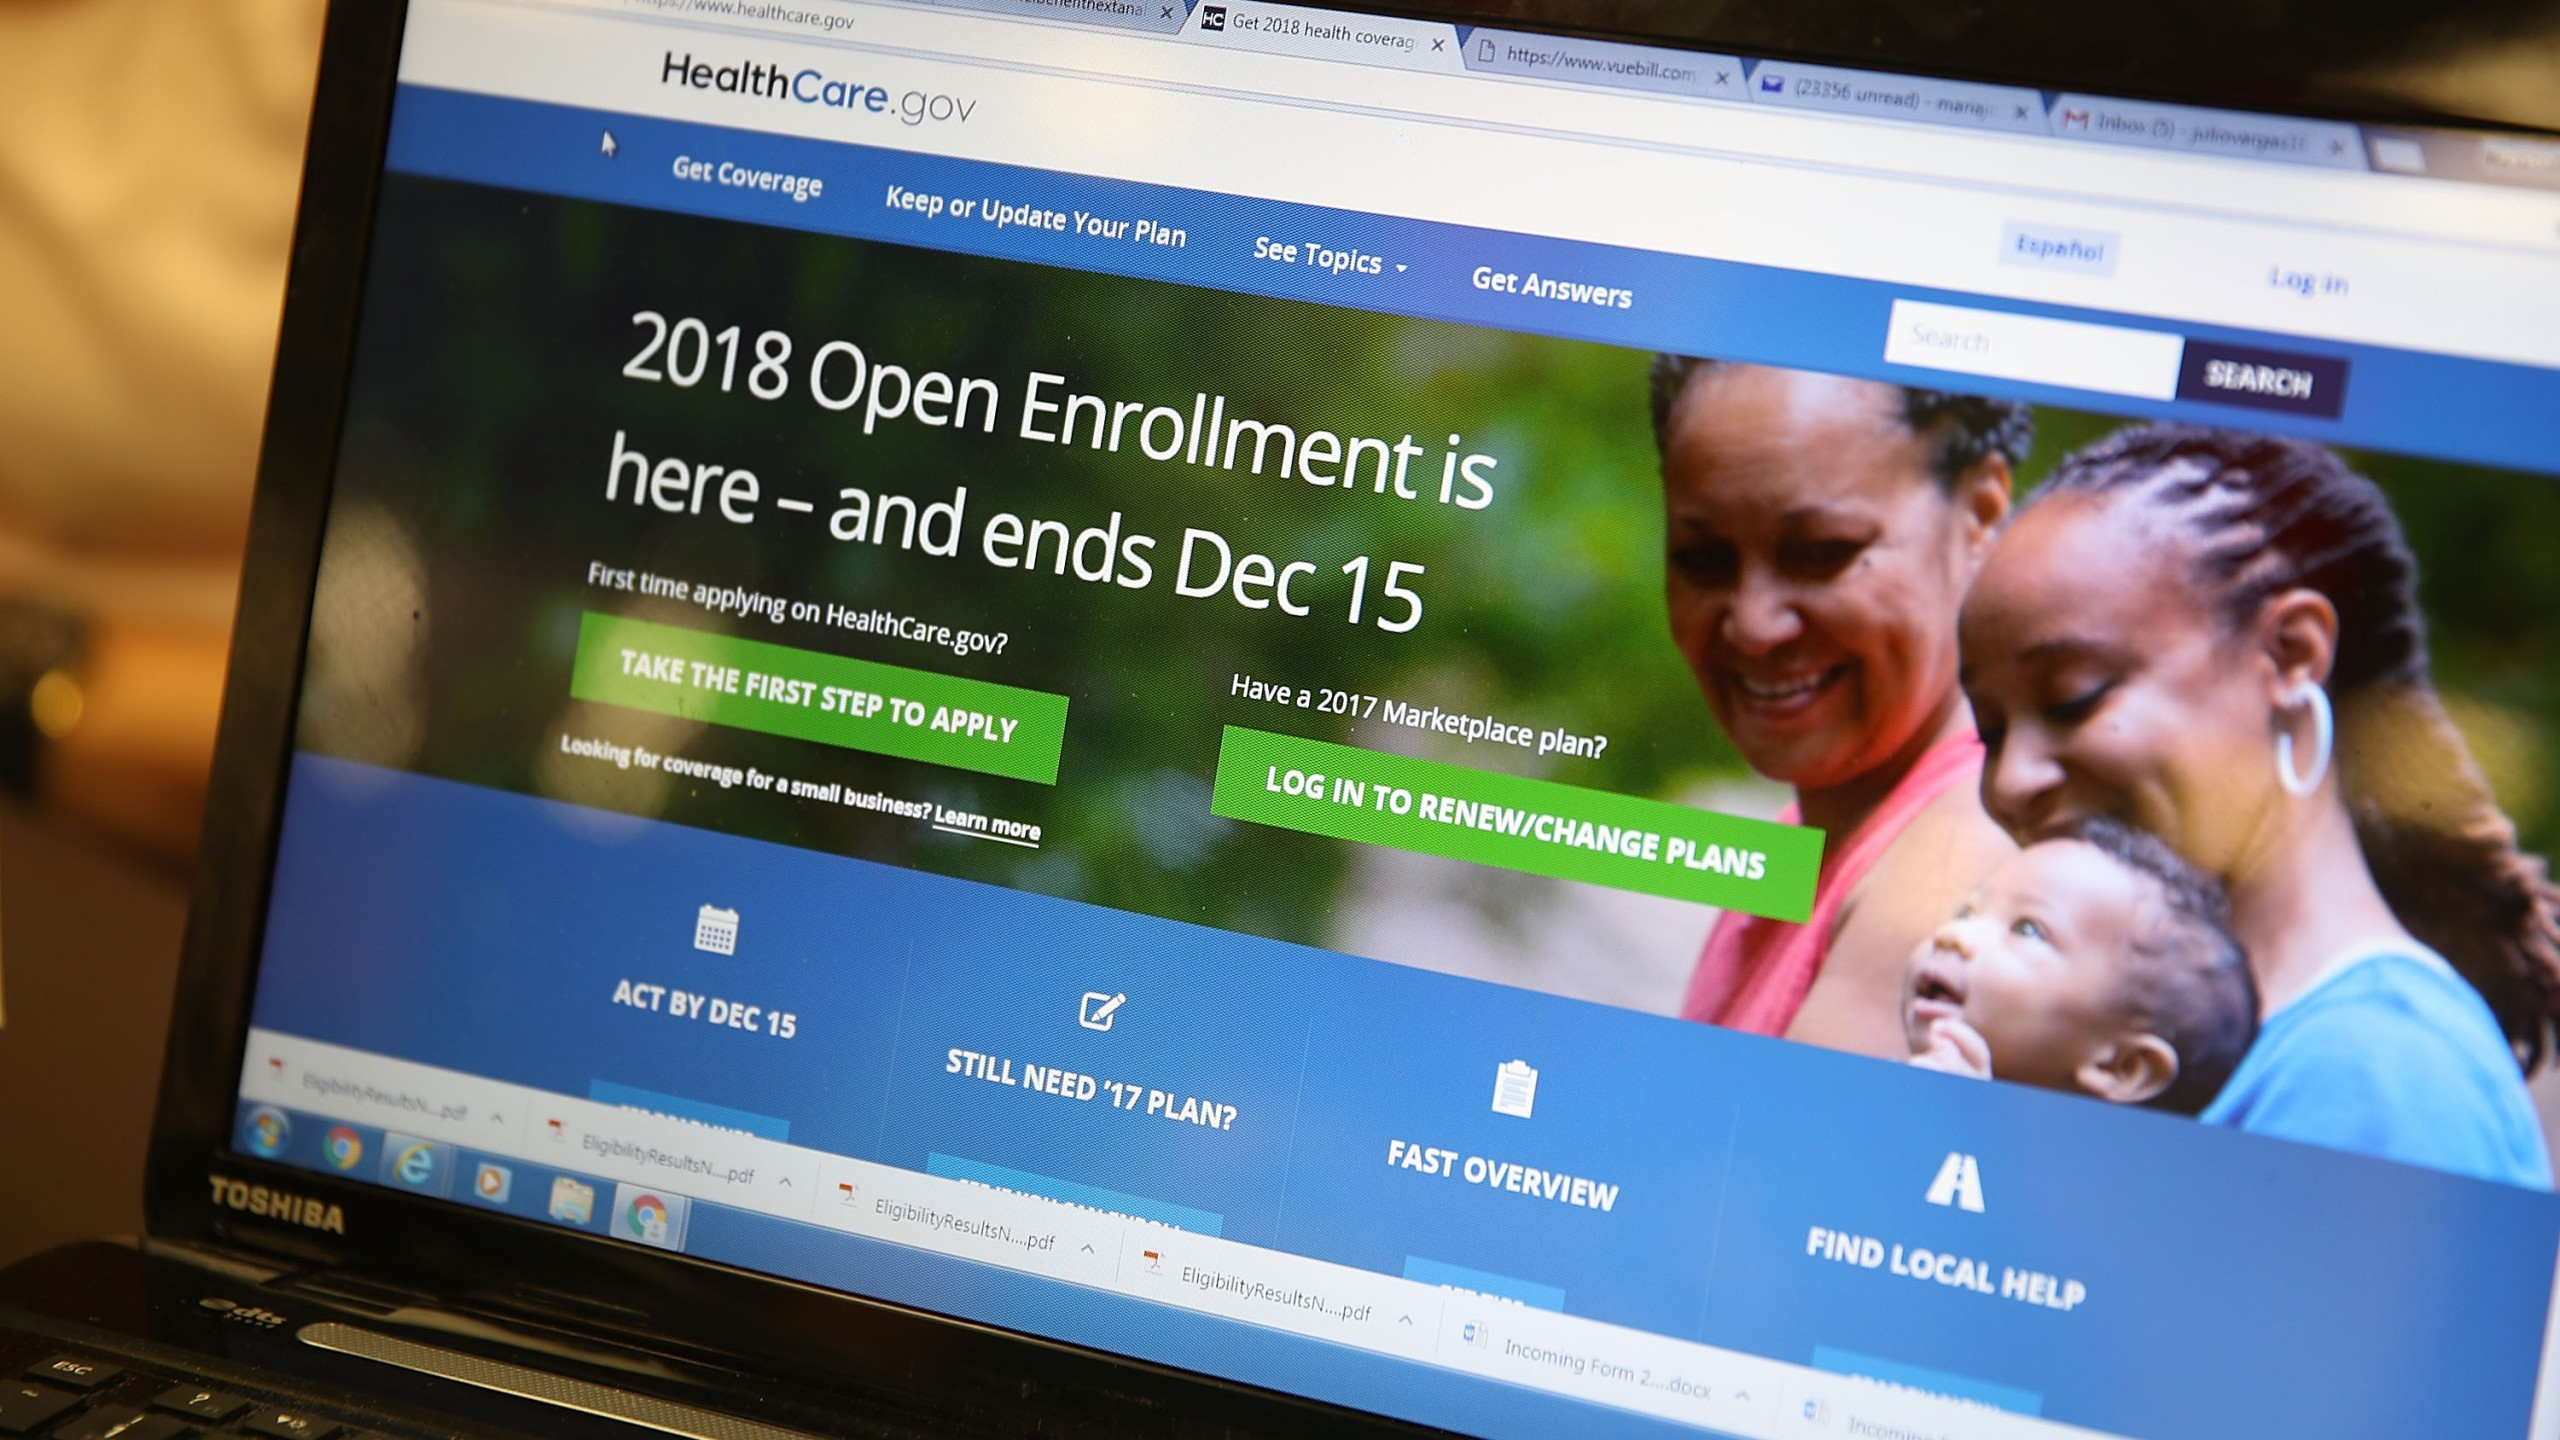 A computer screen shows the enrollment page for the Affordable Care Act on Nov. 1, 2017 in Miami. (Credit: Joe Raedle/Getty Images)